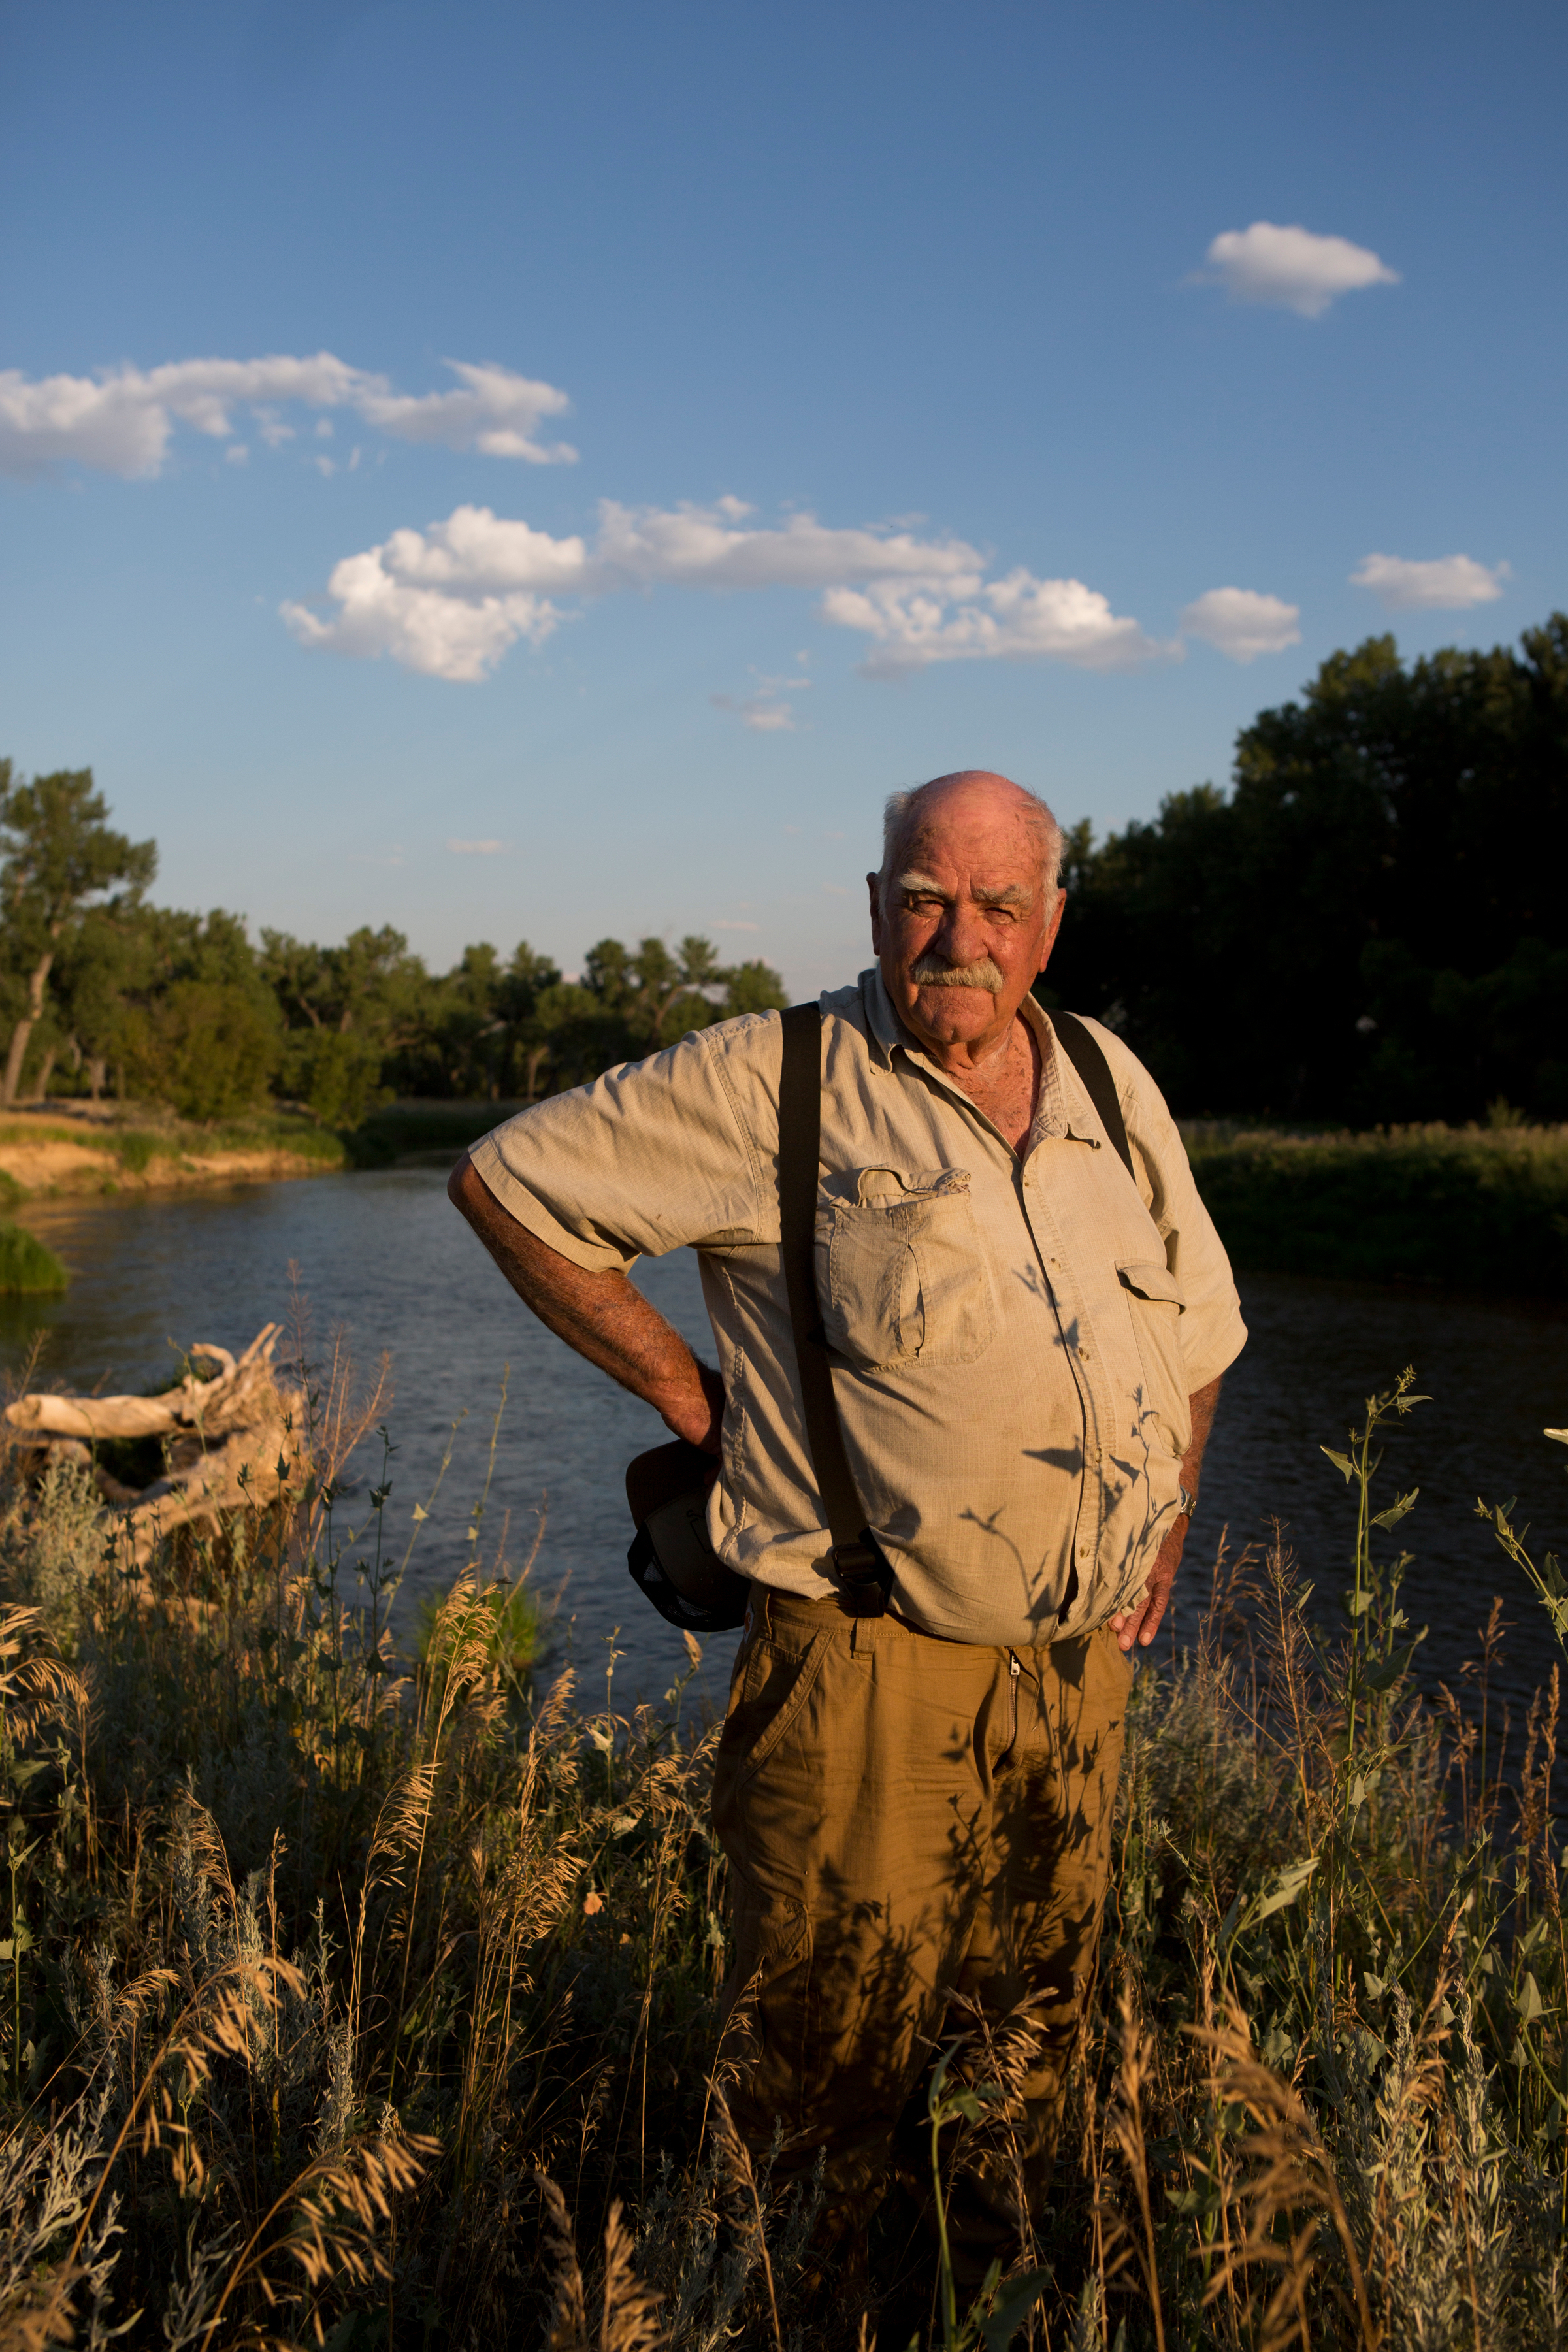 """Art Hayes, pictured here along the Tongue River near Birney, Montana, on his ranch that has been a part of his family since his great grandfather settled on the Three Circle ranch in 1886. """"I love that peace and quiet,"""" Mr. Hayes explains about his love for being a steward of the land. """"It's my little piece of heaven and I'm going to fight for it. """"Even my great grandfather said, 'You're not going to make it without irrigation,'"""" he recalls his father saying. """"It's just vital to us. We're here for the long run. It's (the land) is very productive. But it takes water."""" Residents in Montana's coal country debate the benefits natural resource extraction brings to the region with the damaging effects of water contamination. While the high-paying jobs brings much-needed prosperity to some of the area's communities, the presence of coal mining some argue threatens the livelihood of those who depend on clean water for agriculture. (Kristina Barker for The New York Times)"""